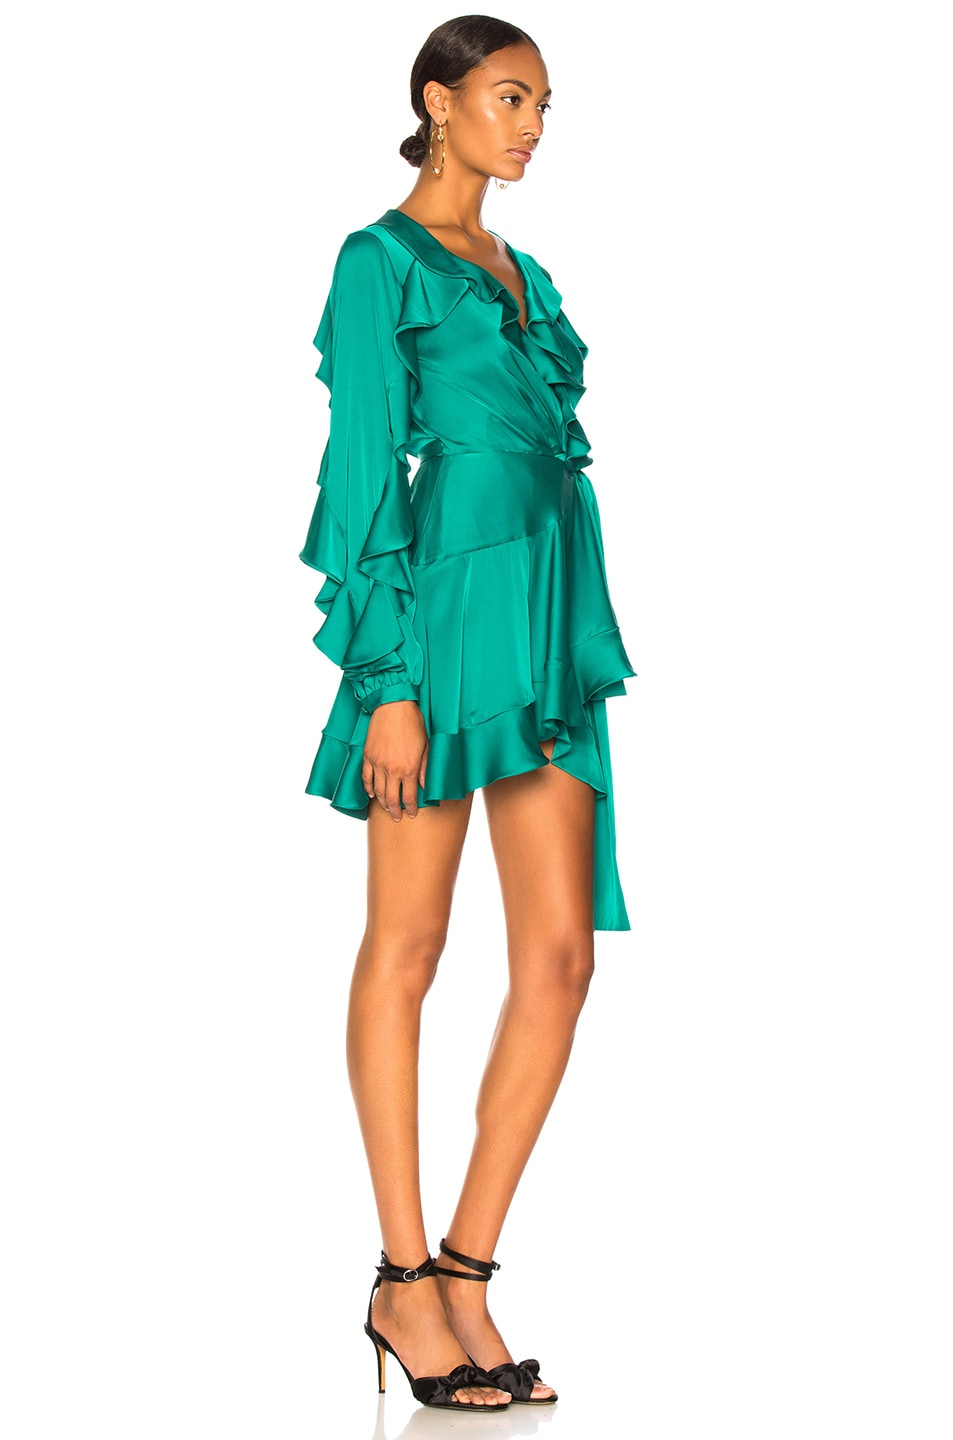 Image 2 of PatBo Ruffle Mini Wrap Dress in Teal